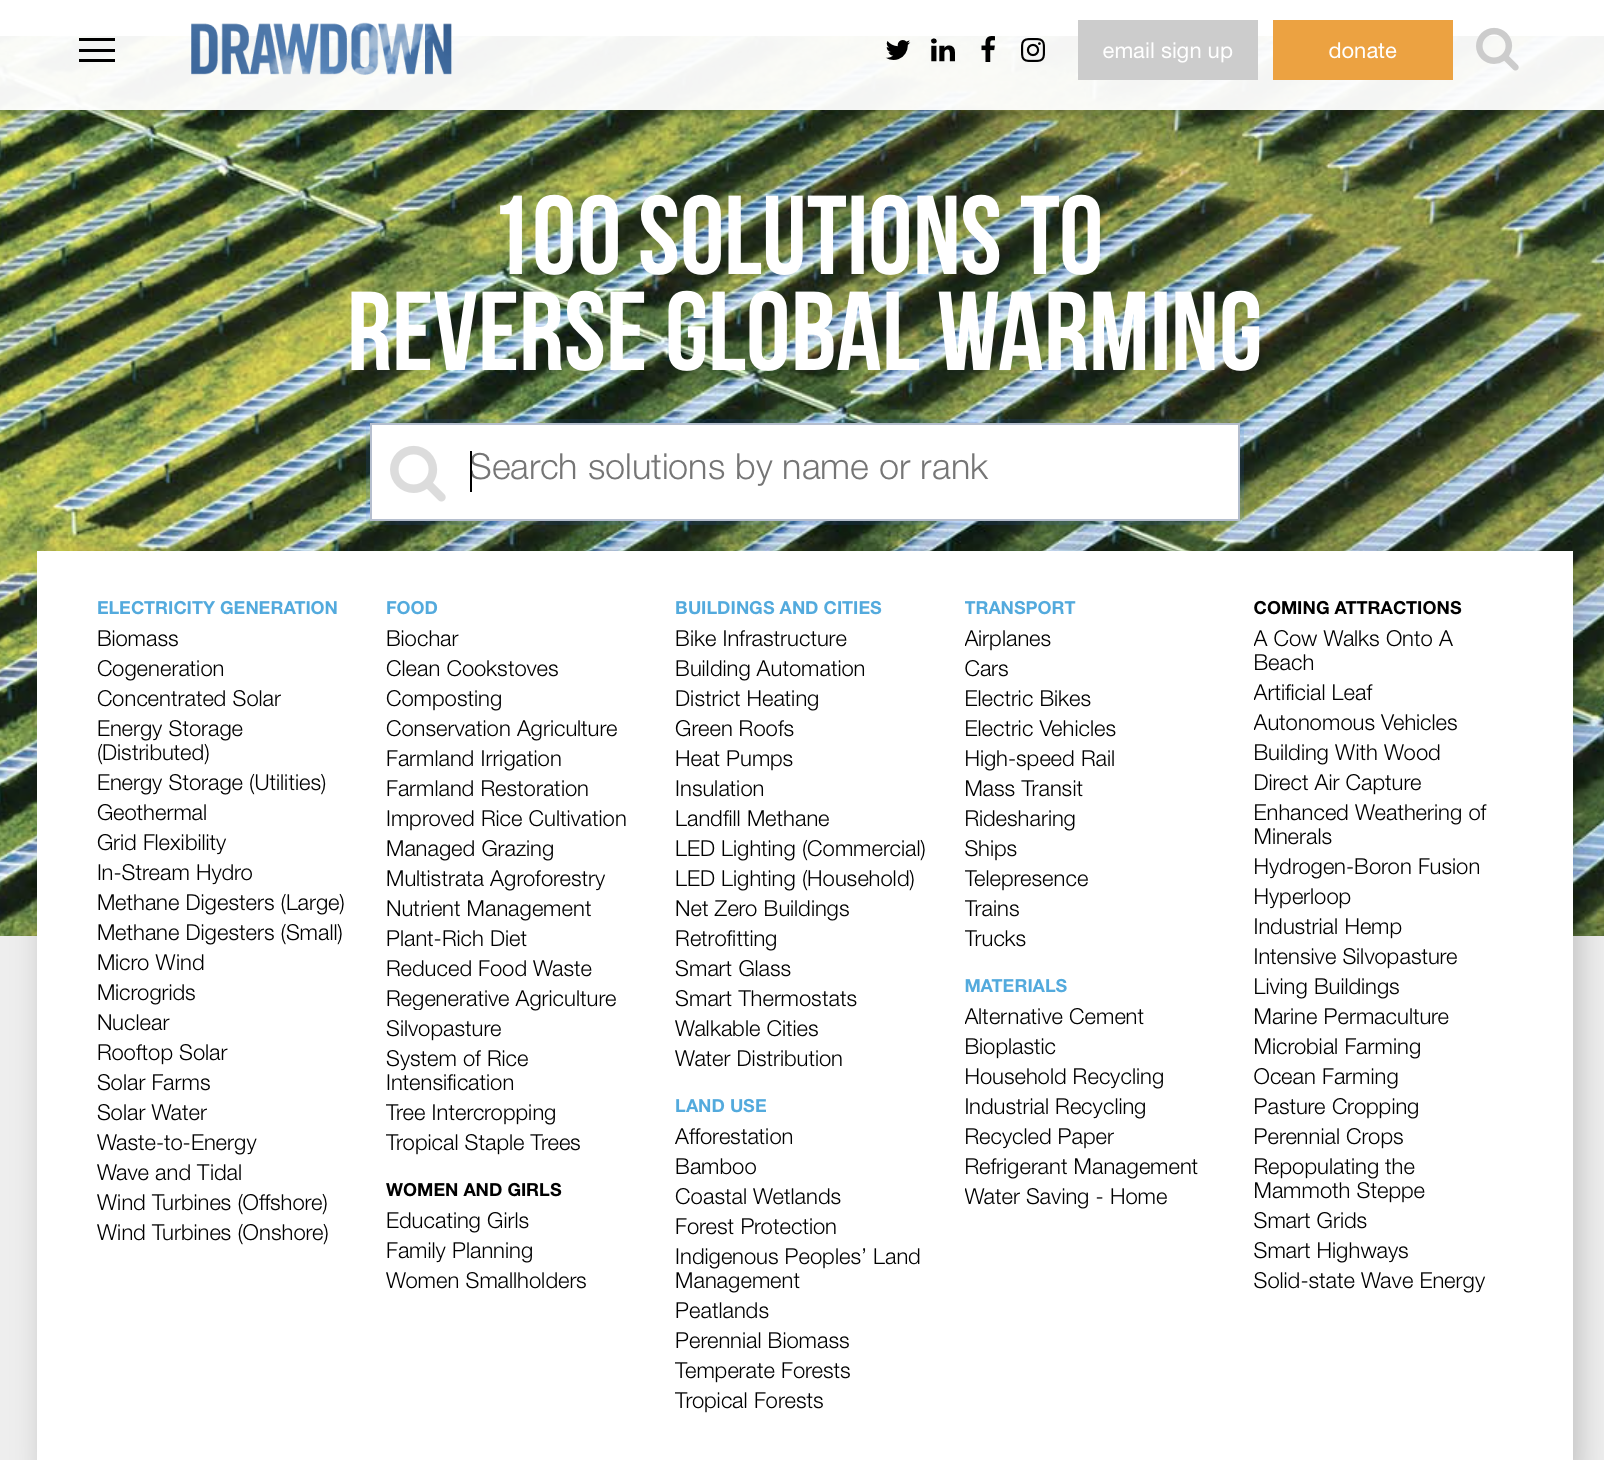 "project drawdown - Drawdown is that point in time when the concentration of greenhouse gases in the atmosphere begins to decline on a year-to-year basis.""We gathered a qualified and diverse group of researchers from around the world to identify, research, and model the 100 most substantive, existing solutions to address climate change. What was uncovered is a path forward that can roll back global greenhouse gas emissions within thirty years. The research revealed that humanity has the means and techniques at hand. Nothing new needs to be invented, yet many more solutions are coming due to purposeful human ingenuity. The solutions we modeled are in place and in action. Humanity's task is to accelerate the knowledge and growth of what is possible as soon as possible."""